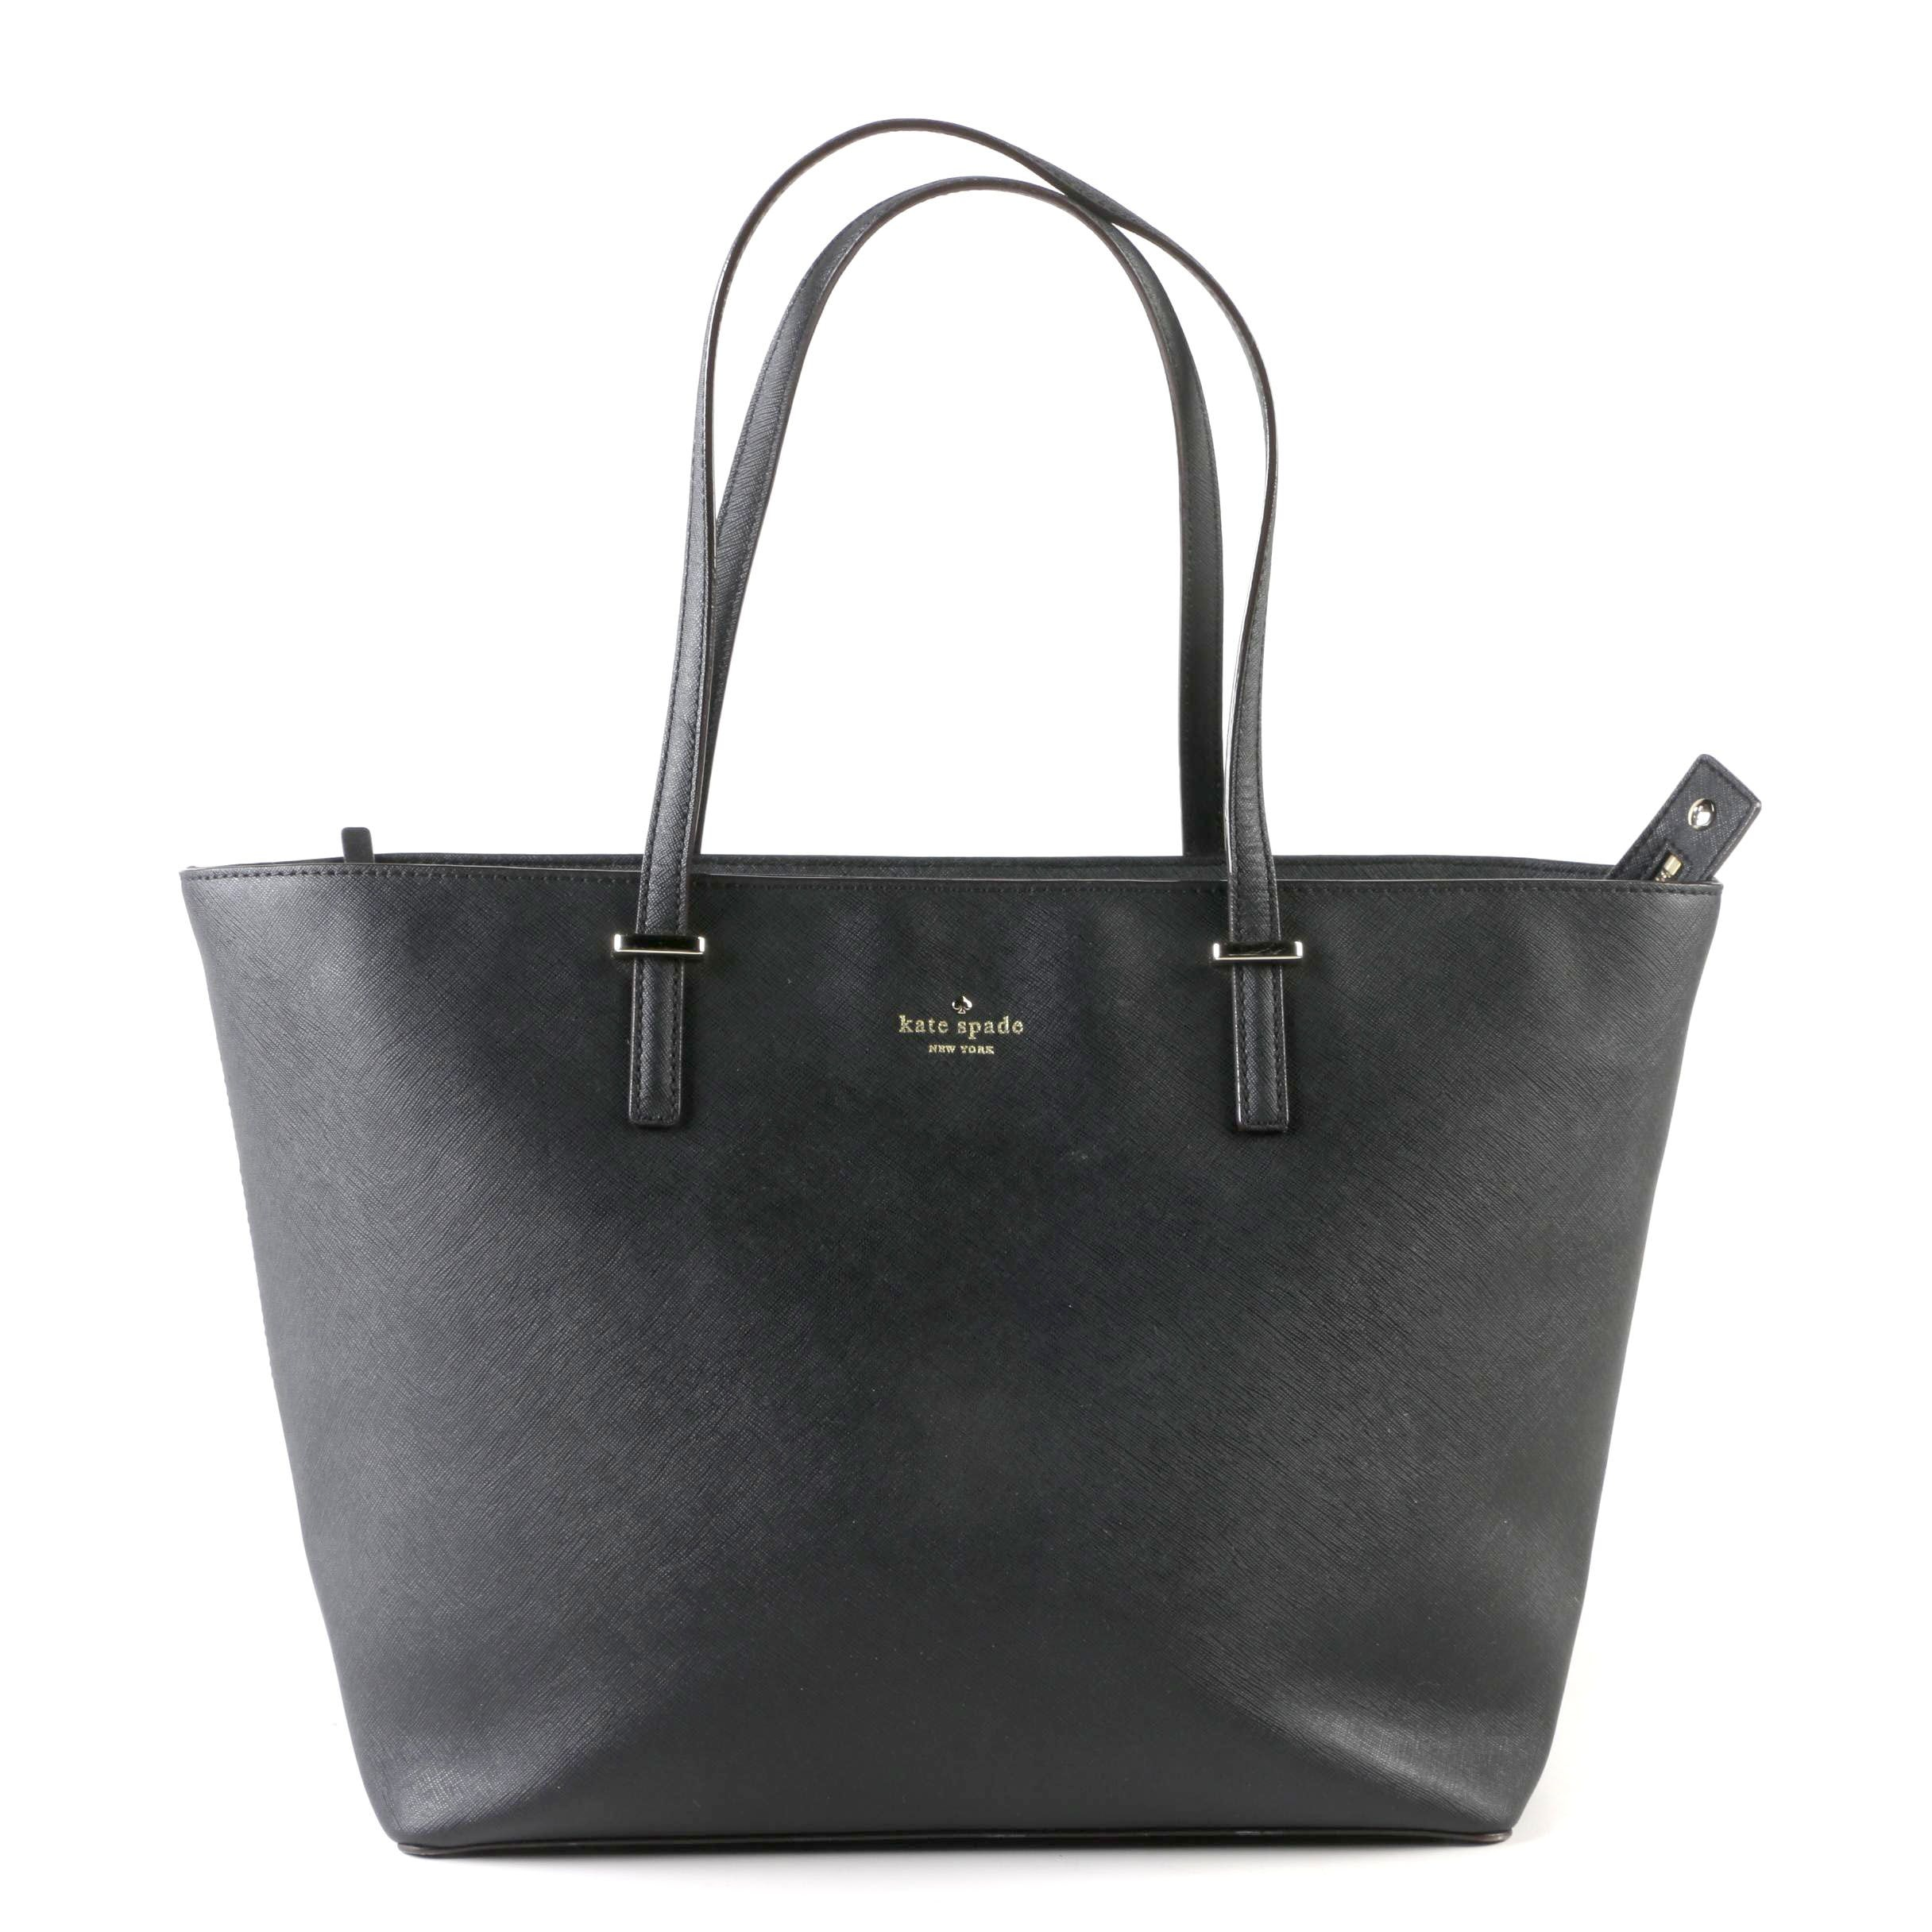 Kate Spade New York Black Saffiano Leather Tote Bag